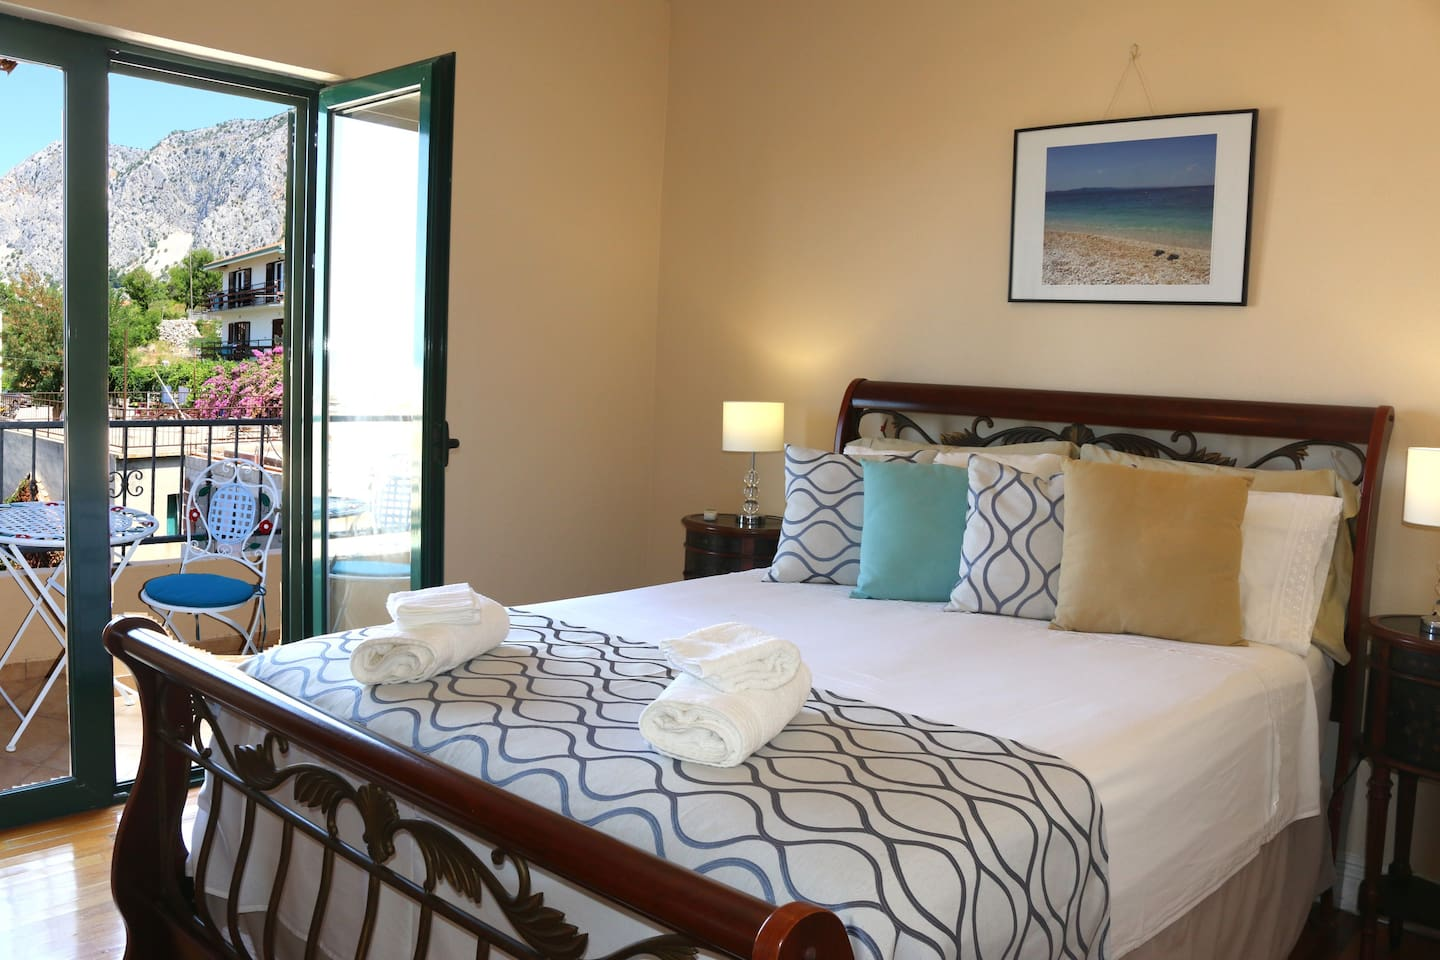 Bedroom with queen sized bed and small balcony